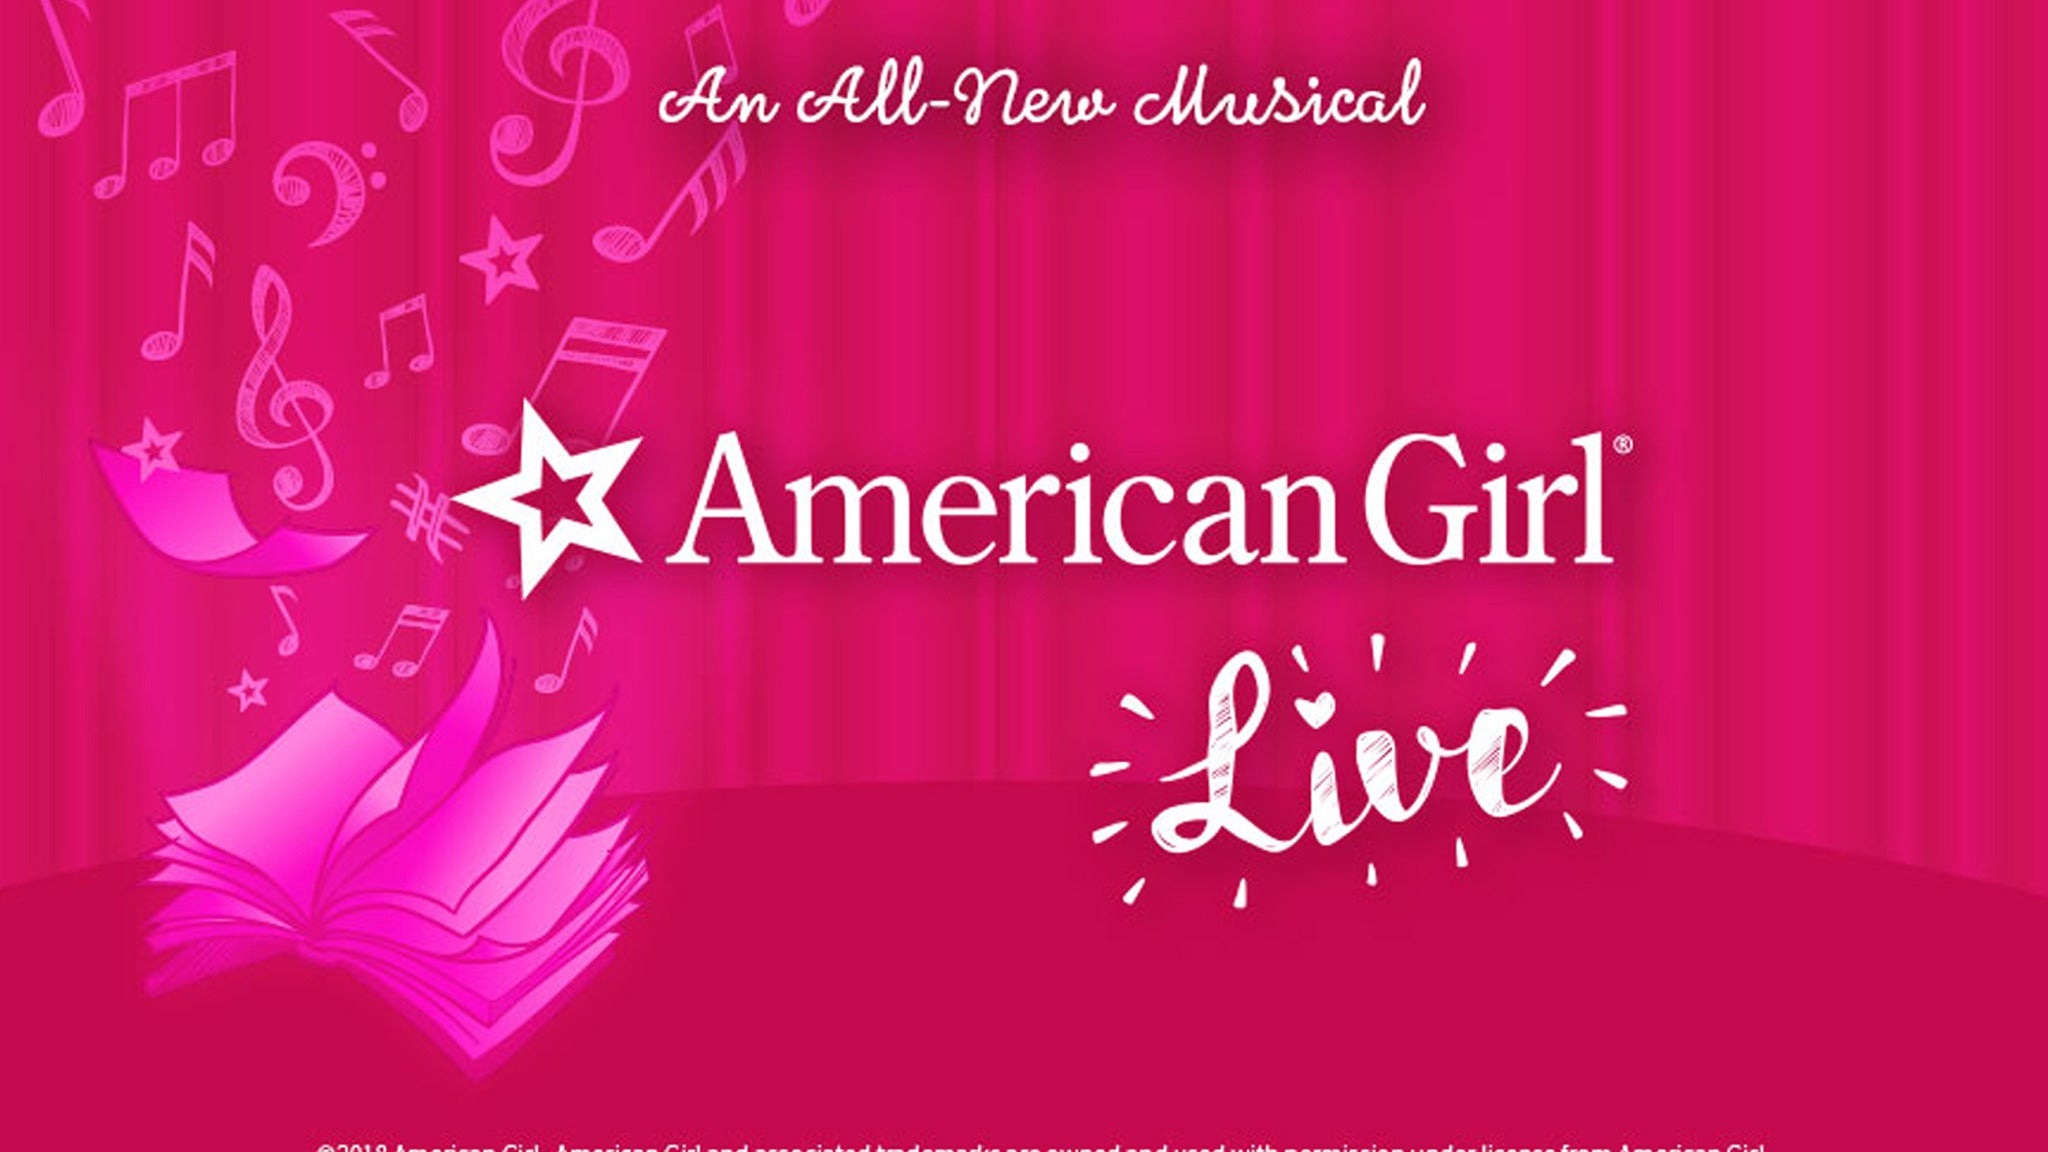 American Girl Live (Chicago) at Shank Hall - Milwaukee, WI 53202